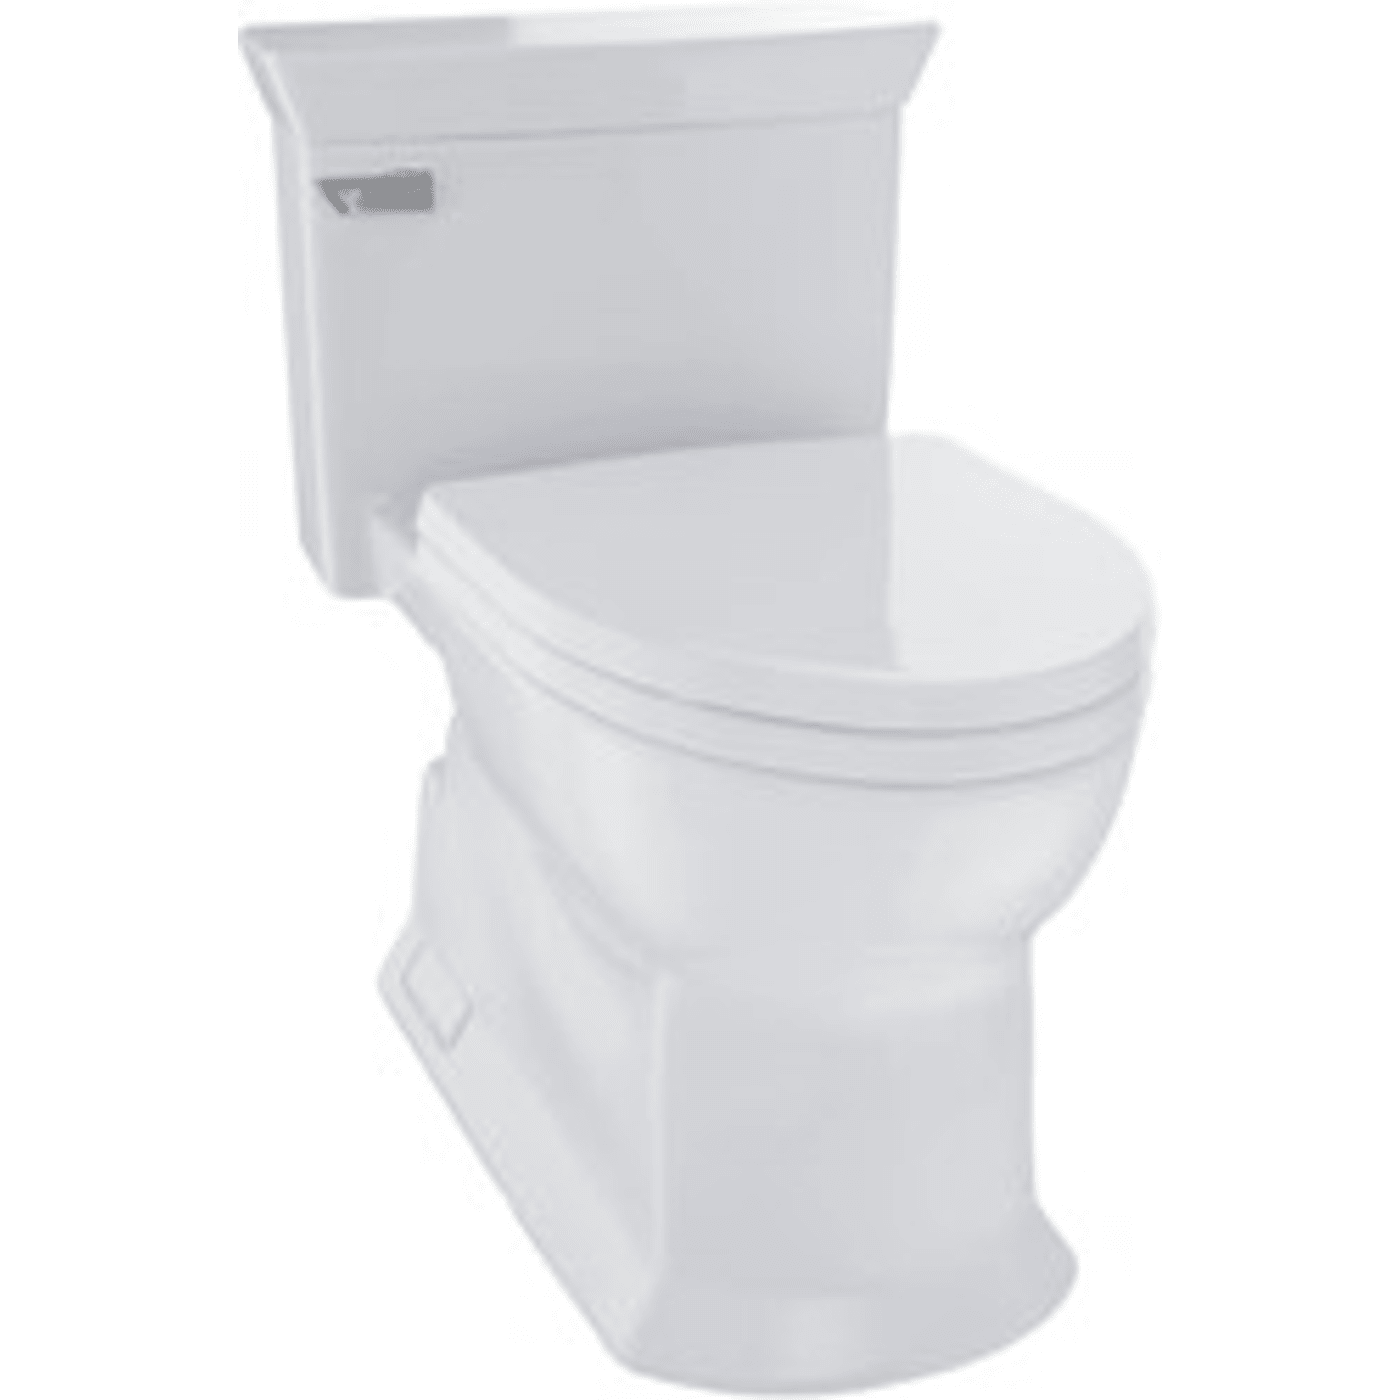 MS964214CEFG#11 by Toto - Toilets | Goedekers.com